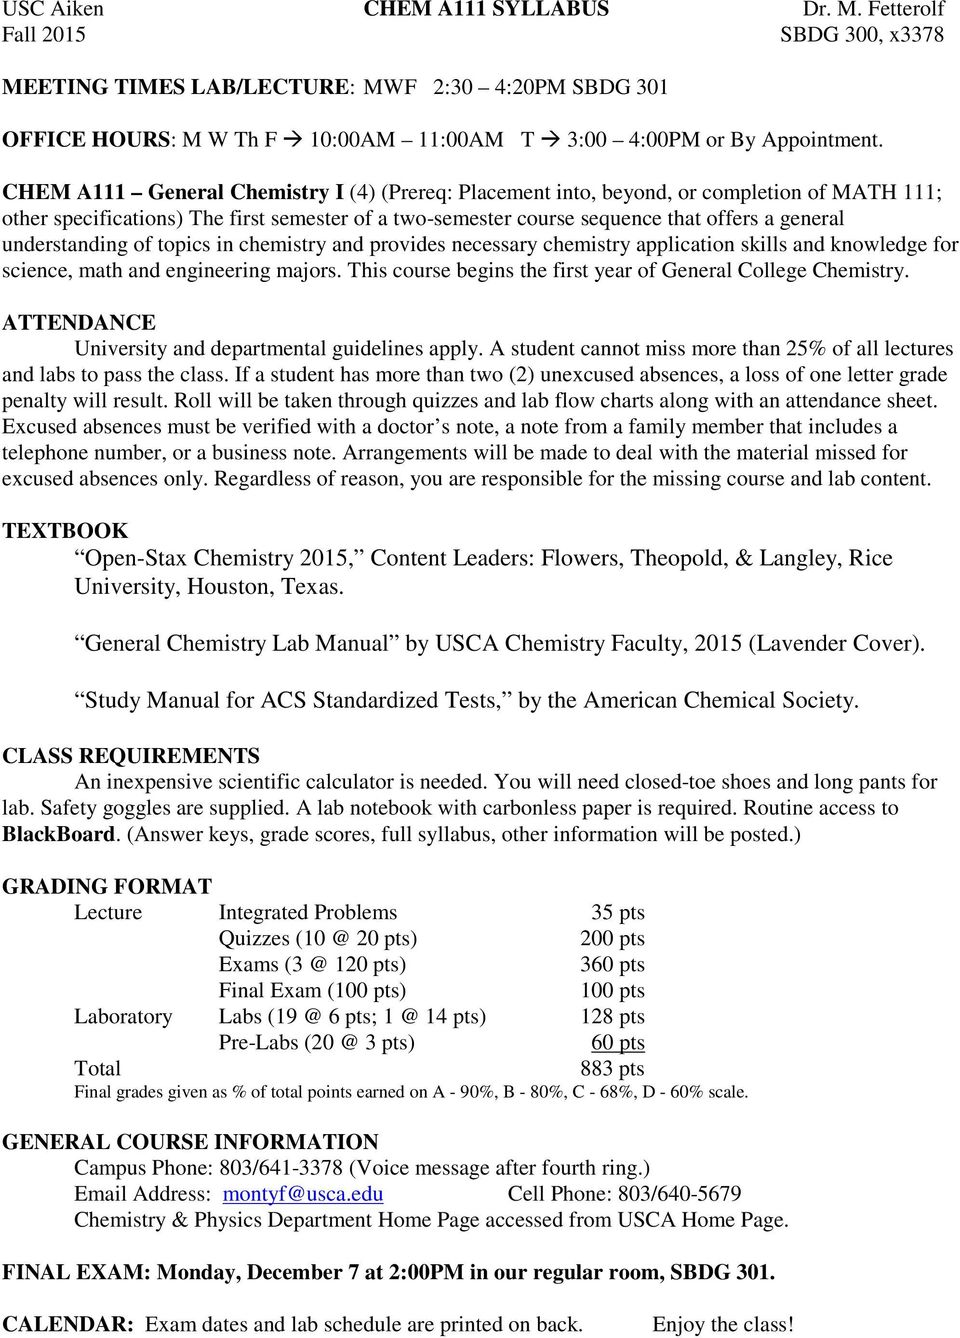 General Chemistry 1411 Lab Manual Answers